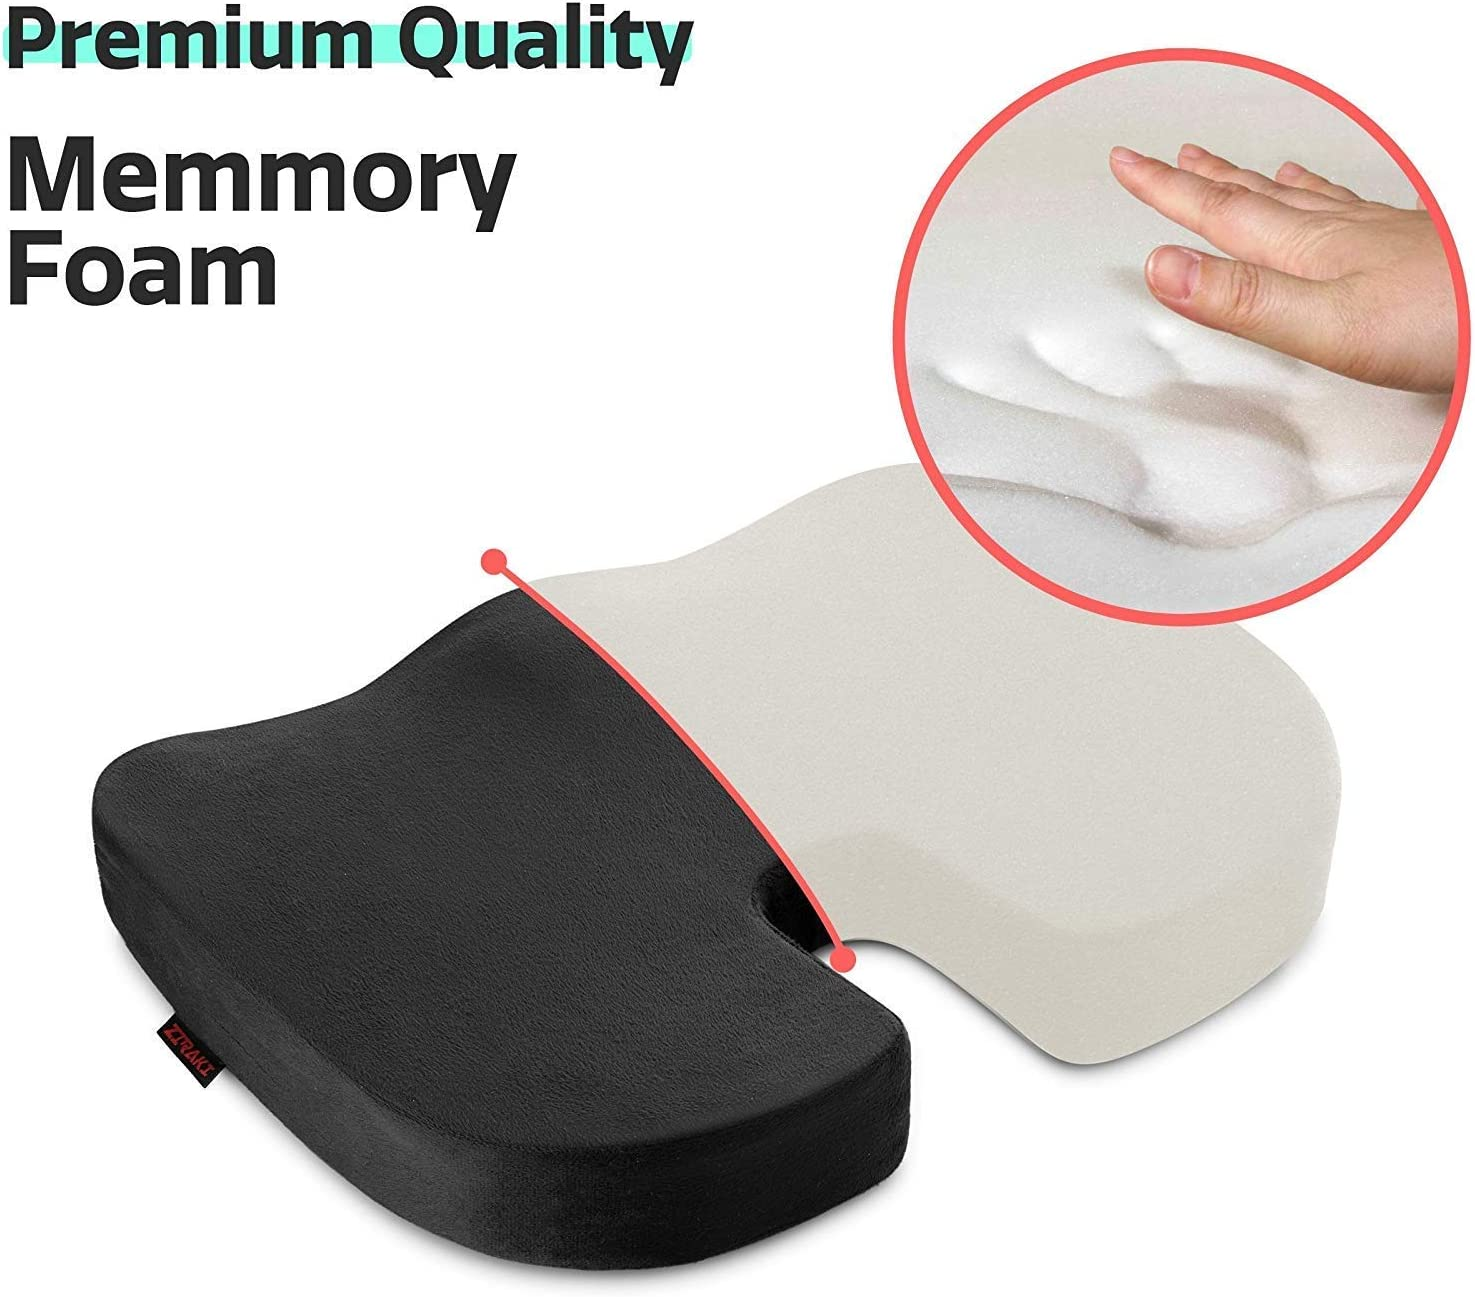 Ziraki Coccyx Seat Cushion Orthopedic, Luxury Chair Pillow, 100% Memory Foam, For Back Pain Relief & Sciatica & Tailbone Pain Back Support - Ideal Gift For Home Office Chair & Car Driver Seat Pillow: Furniture & Decor